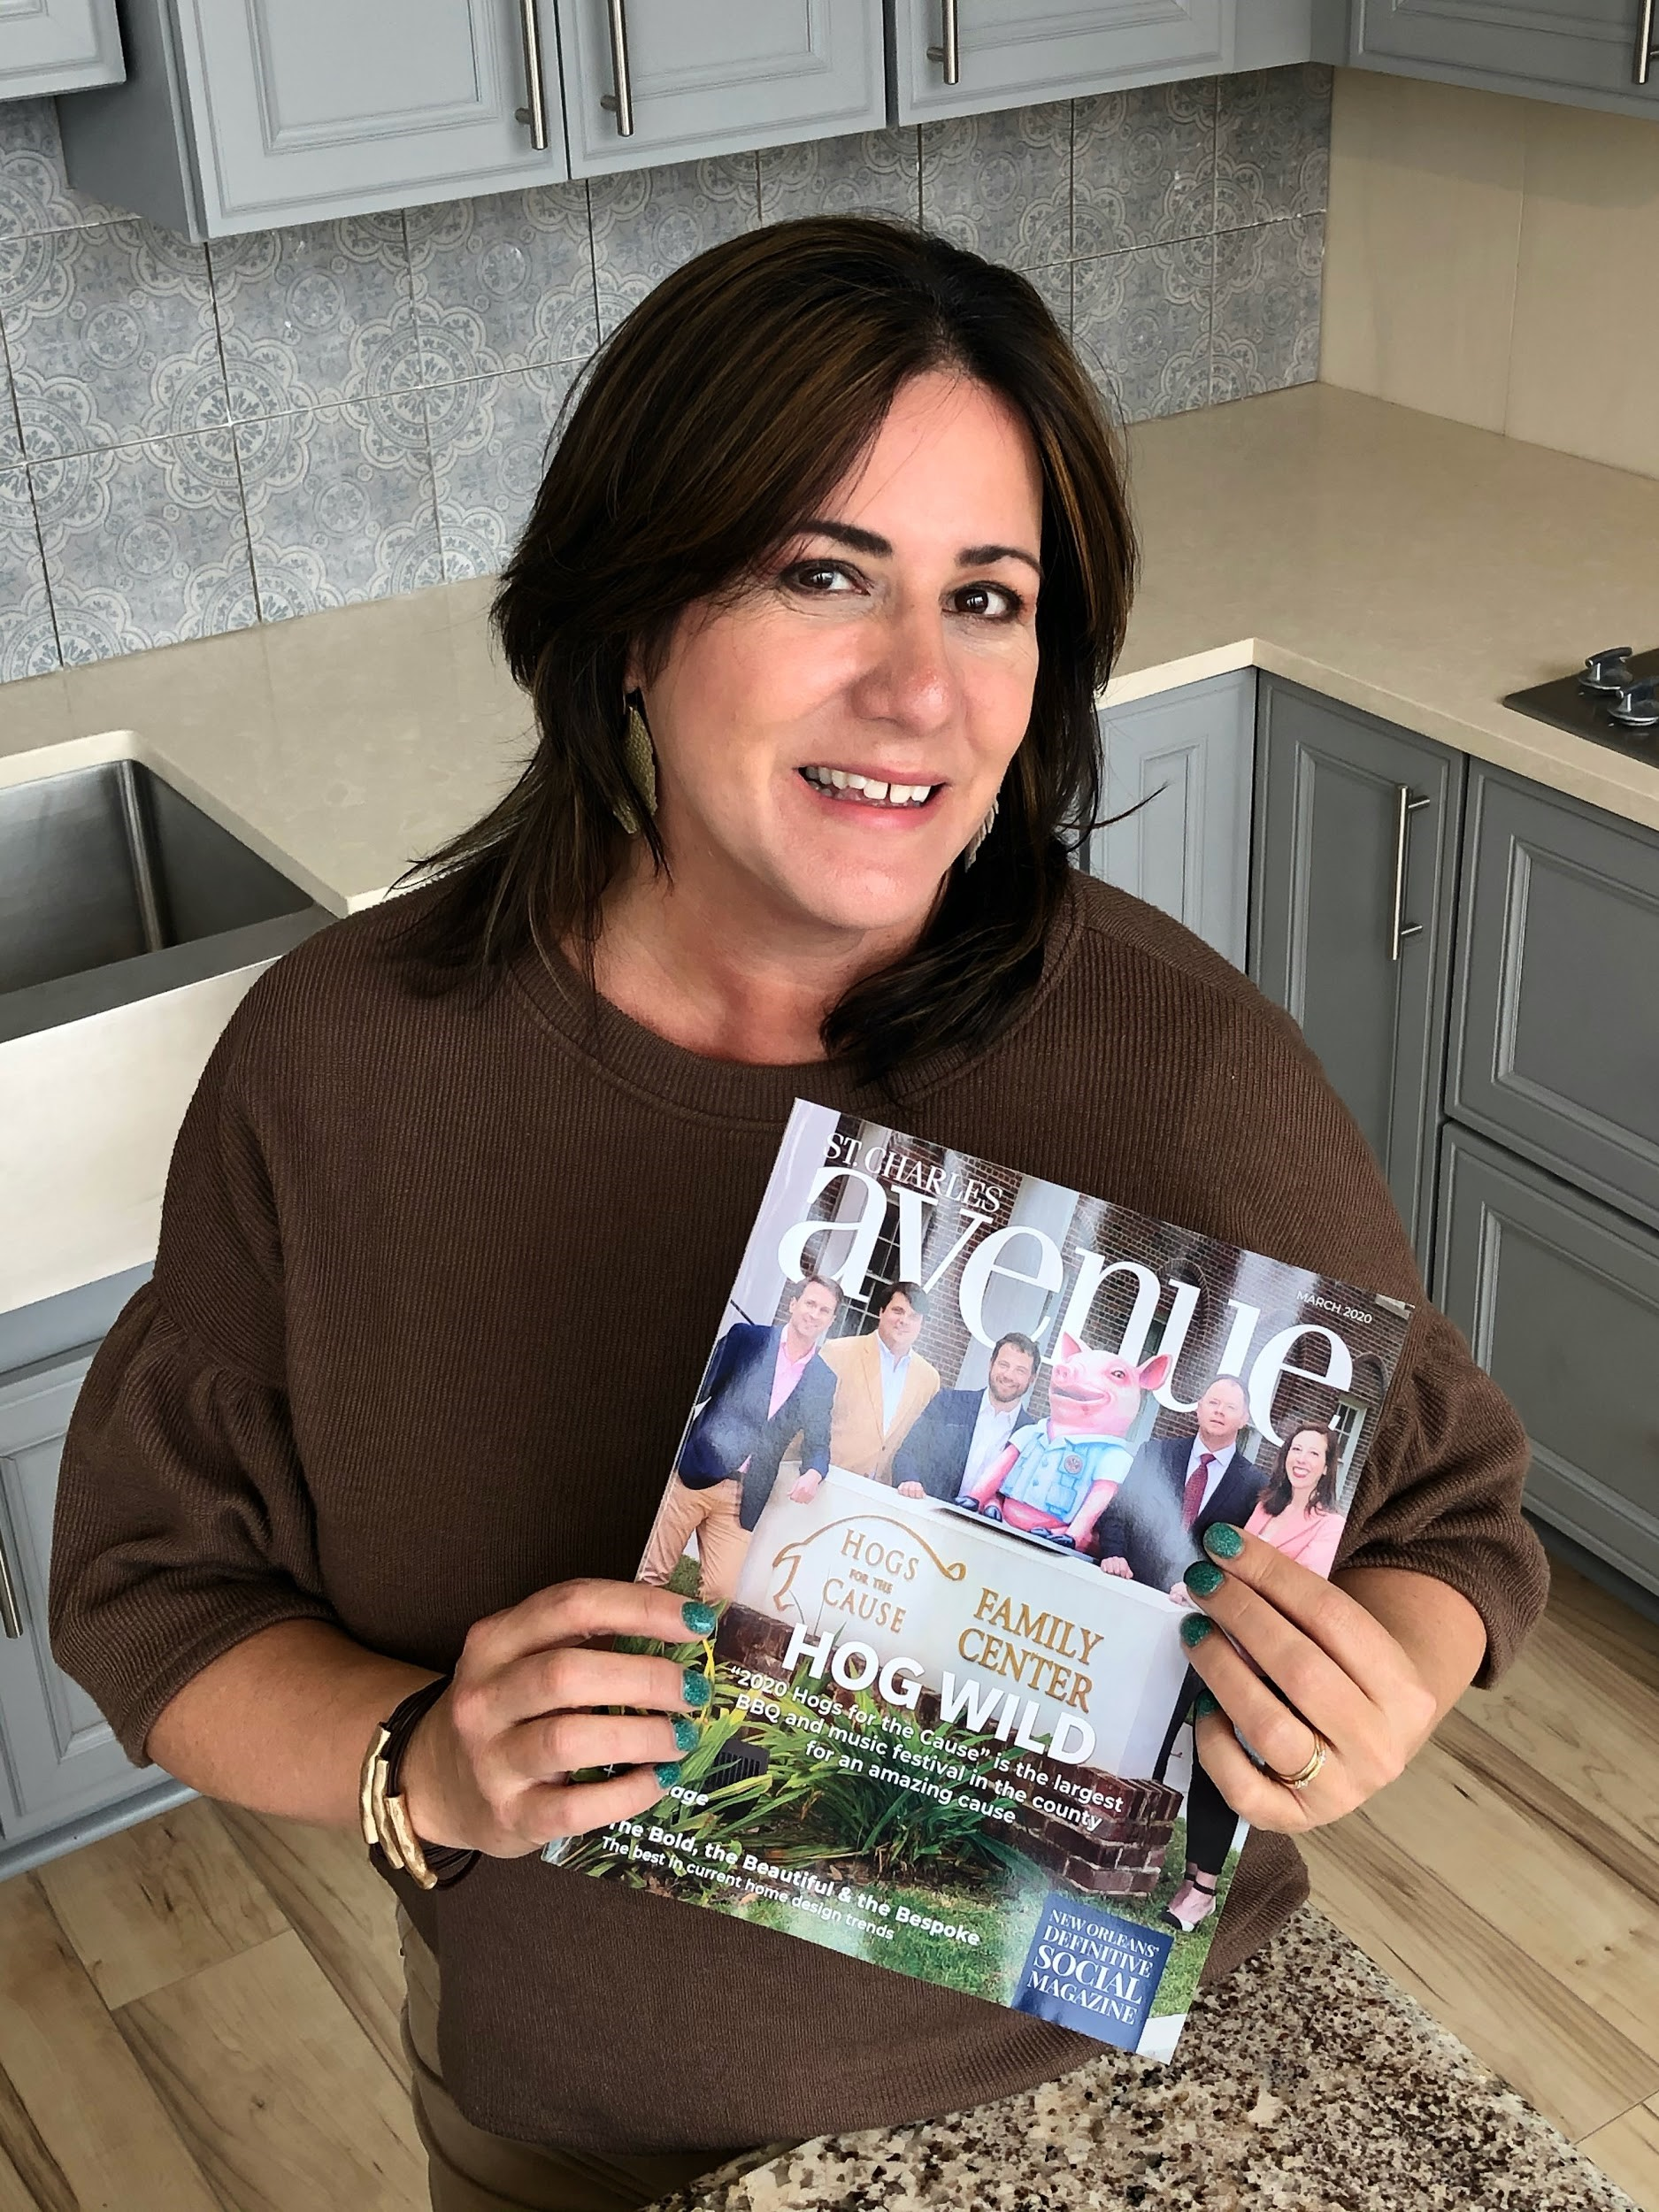 Singer Kitchens Talks 2020 Design Trends with St. Charles Magazine